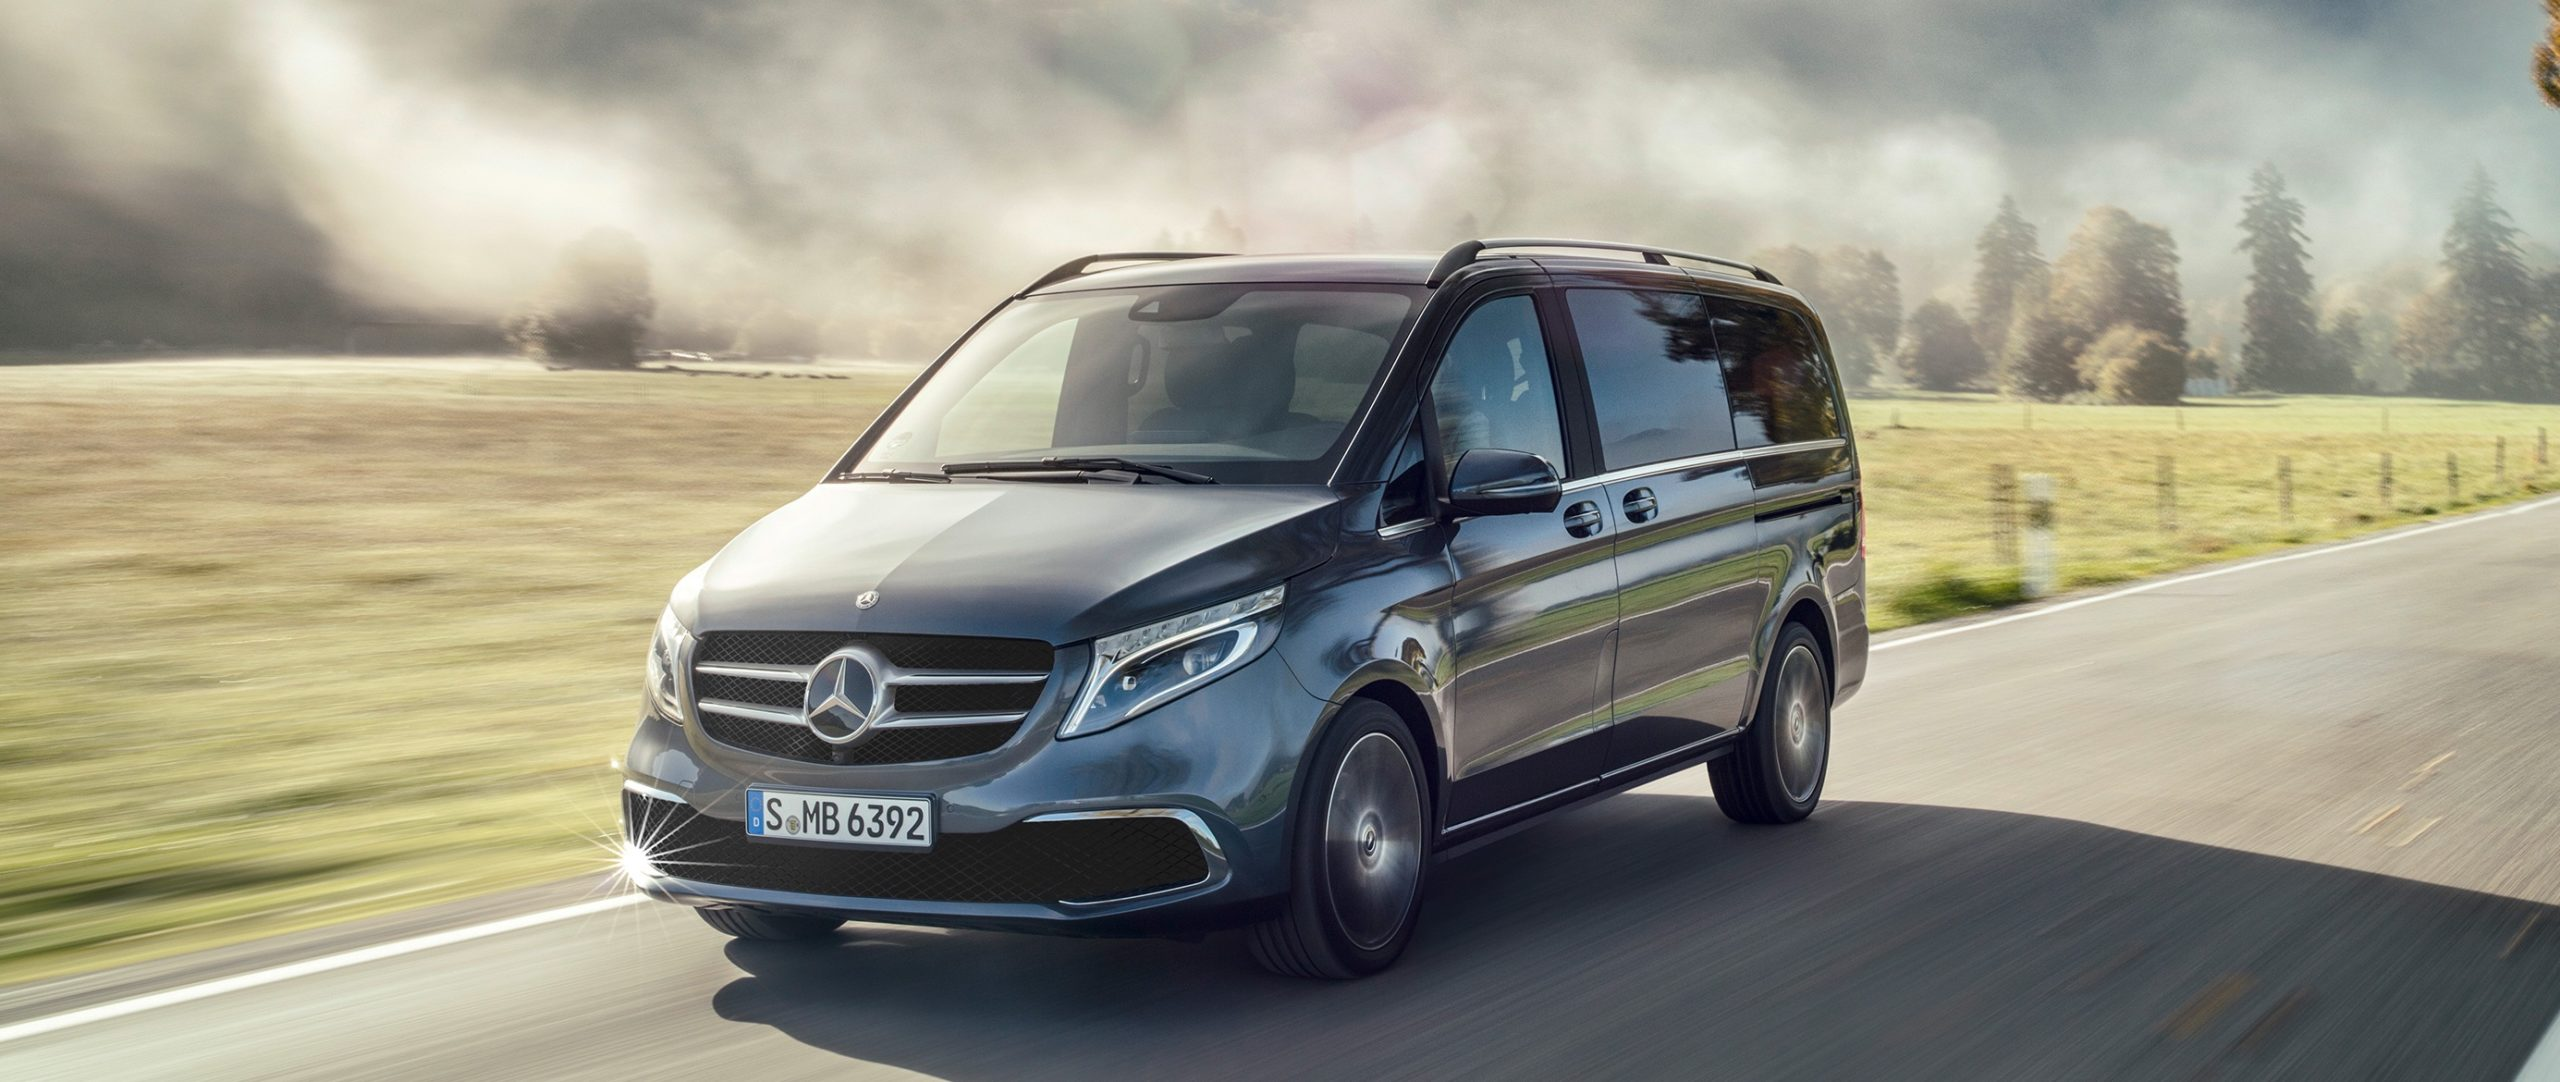 mercedes-benz-v-class-people-mover-driving-through-country-side